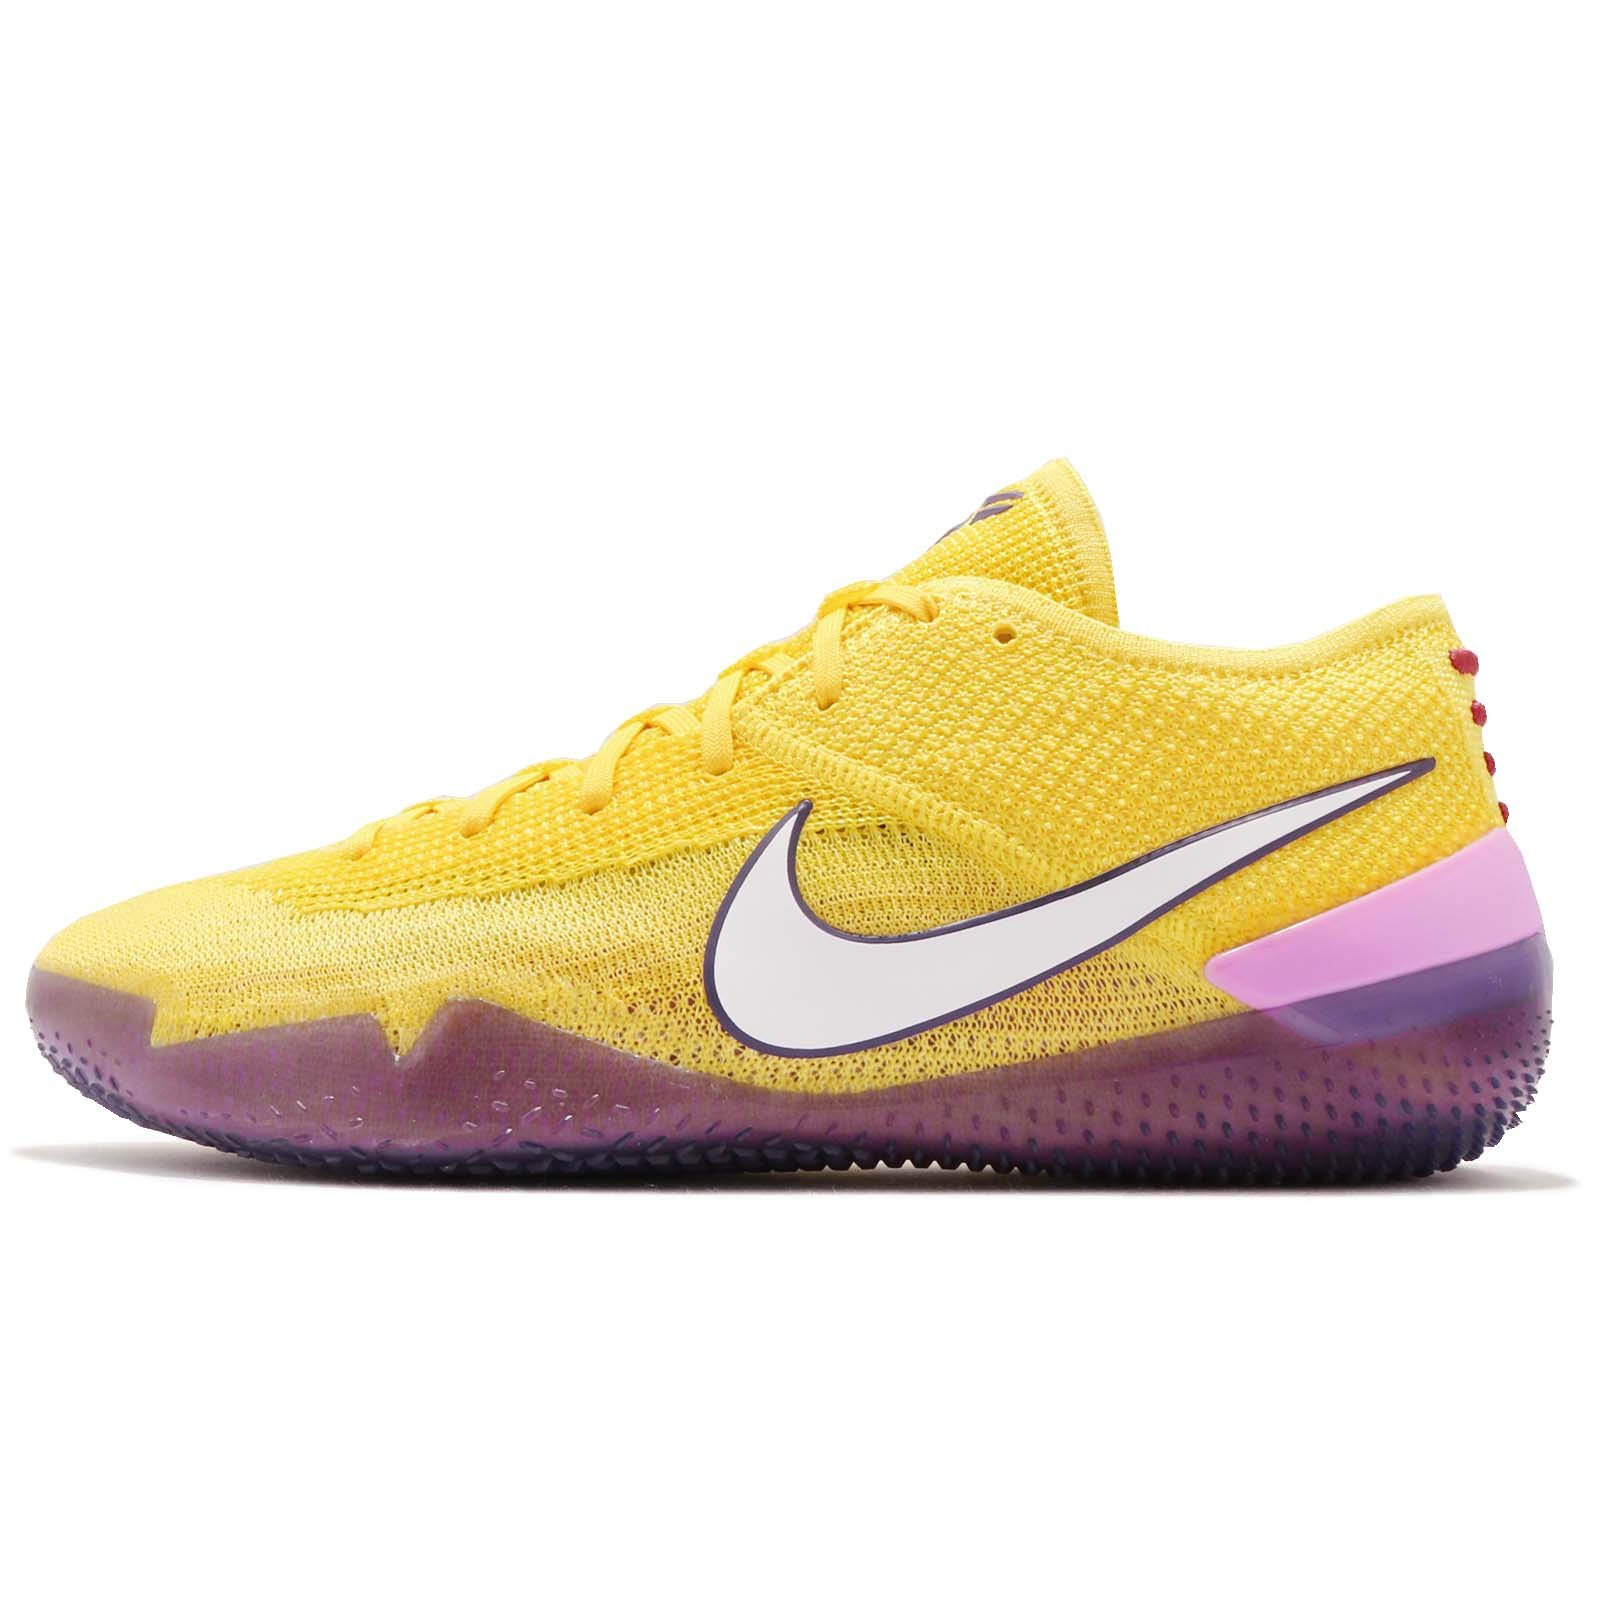 d9529bc35fa3 Galleon - Nike Men s Kobe A.D. NXT 360 Basketball Shoes (12-M) Yellow White